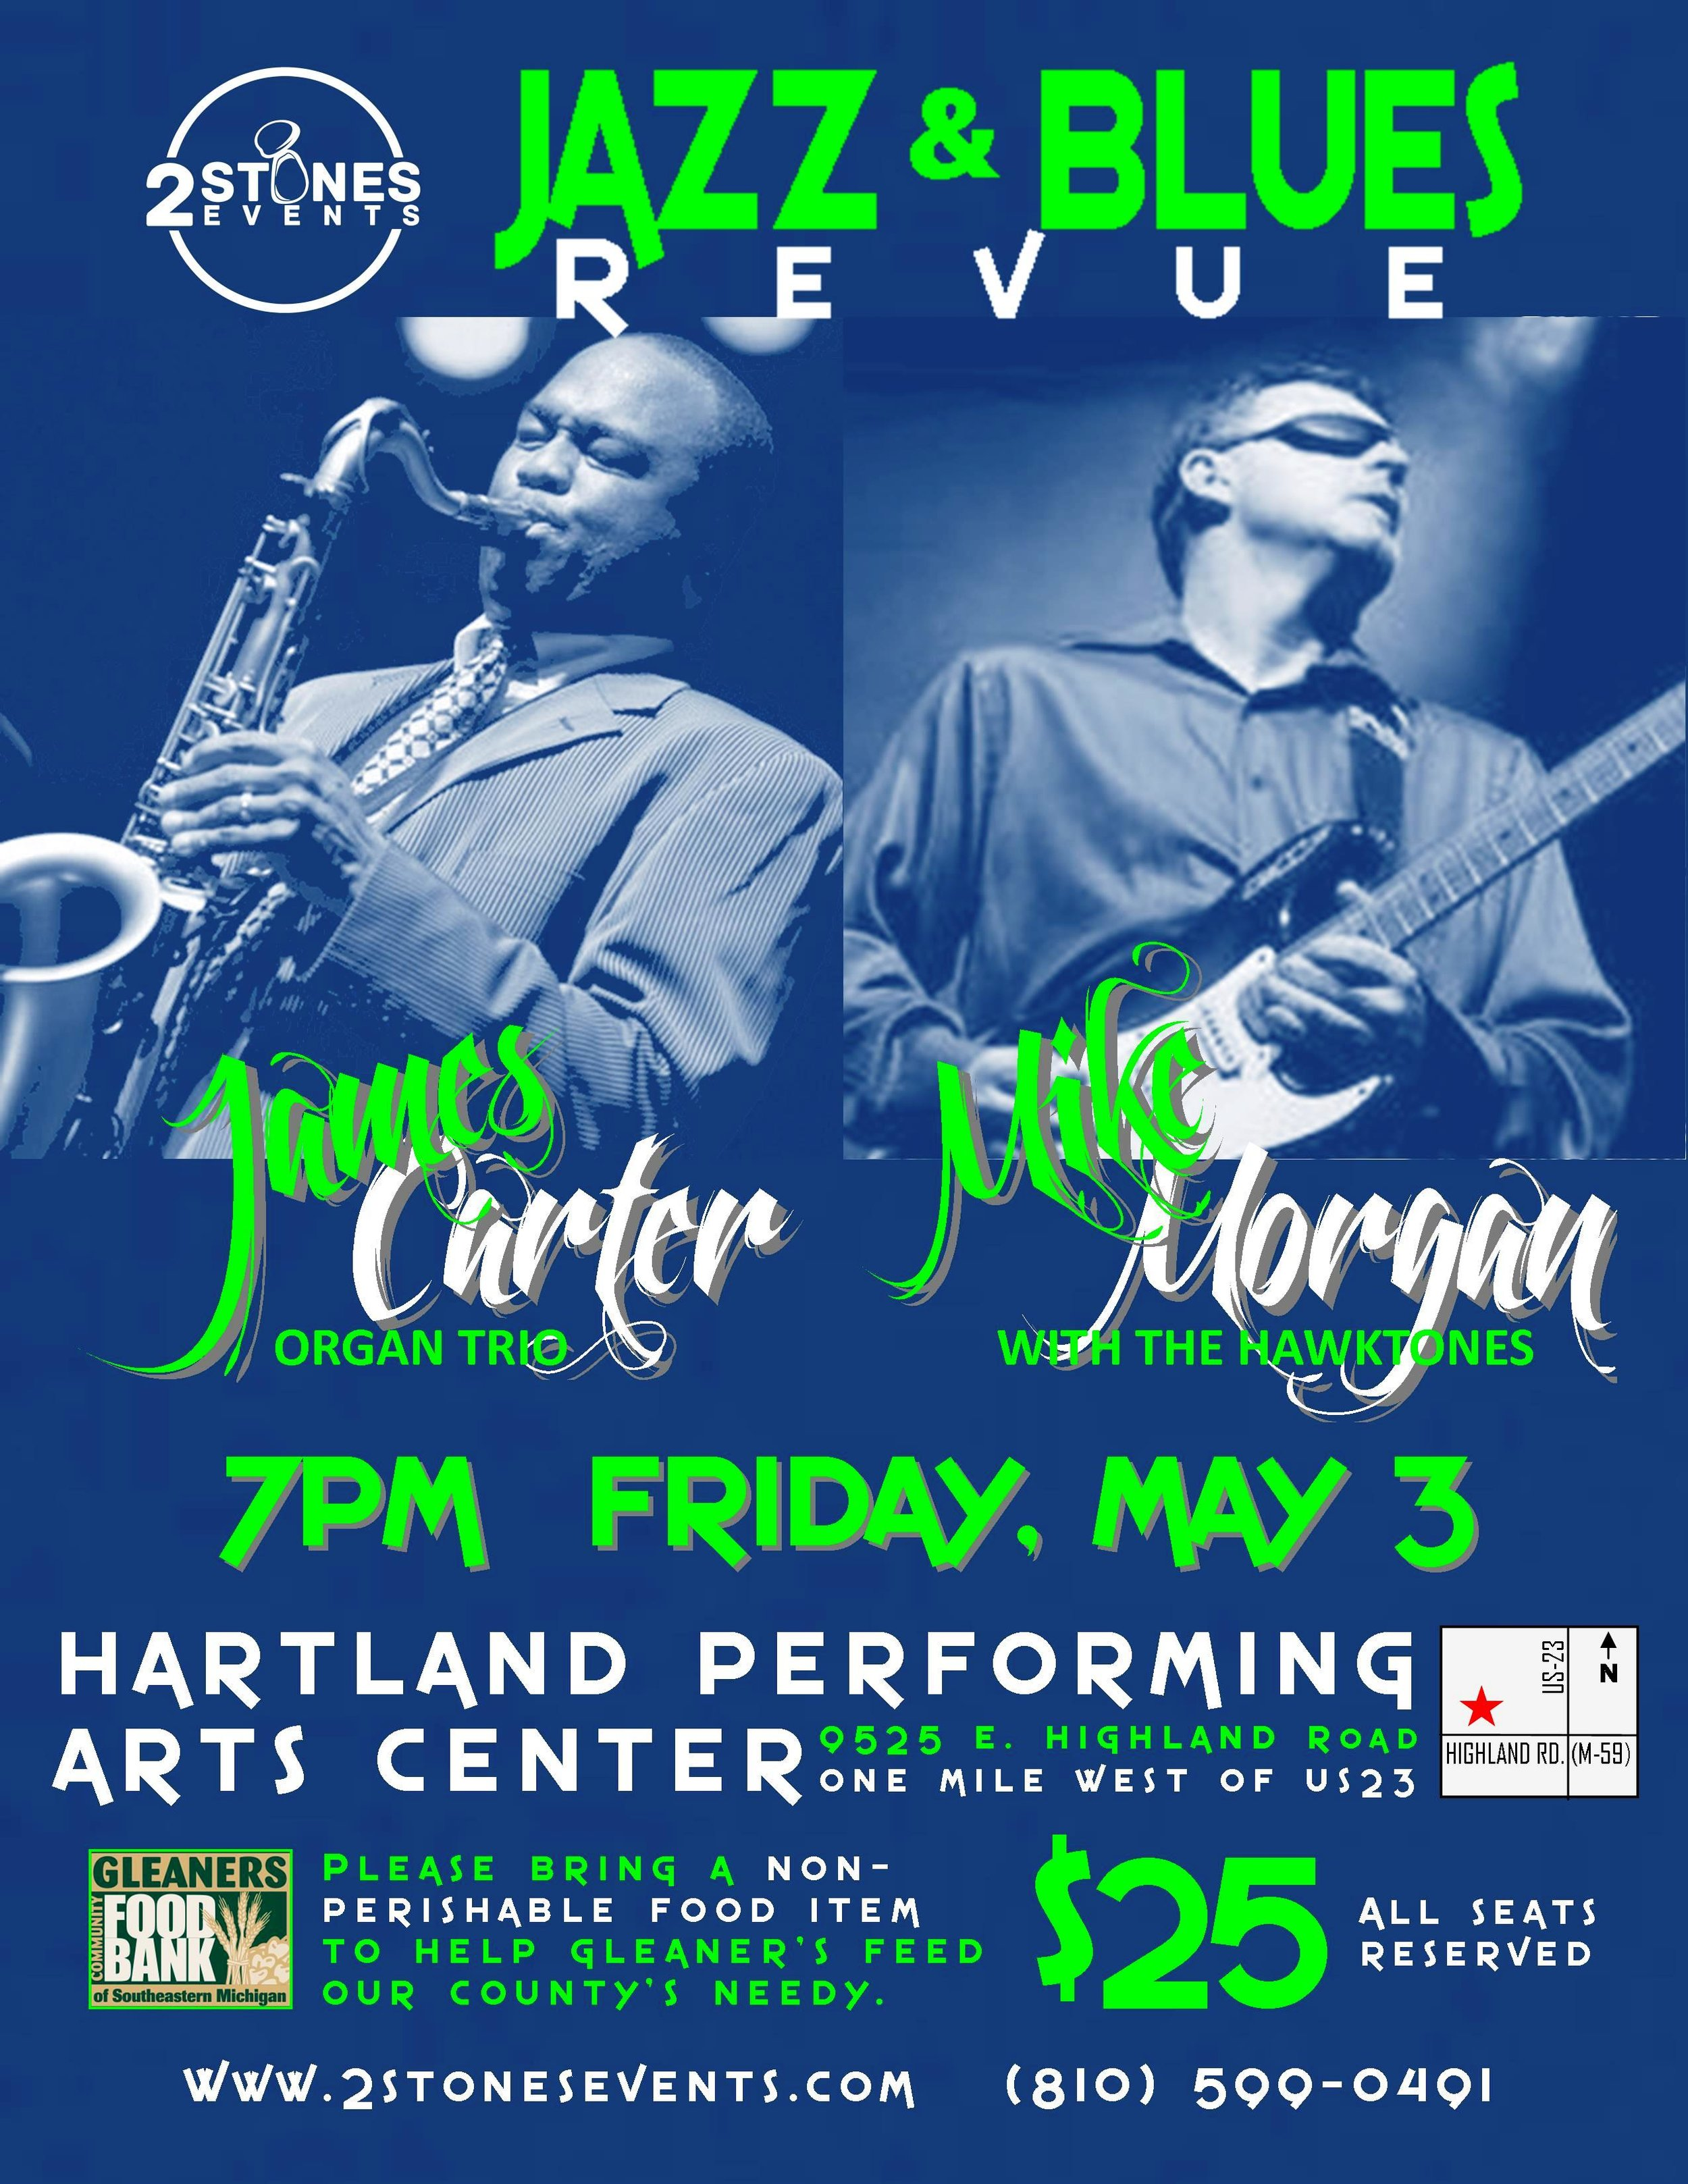 jazz blues revue poster BLUE with Mike Morgan.jpg